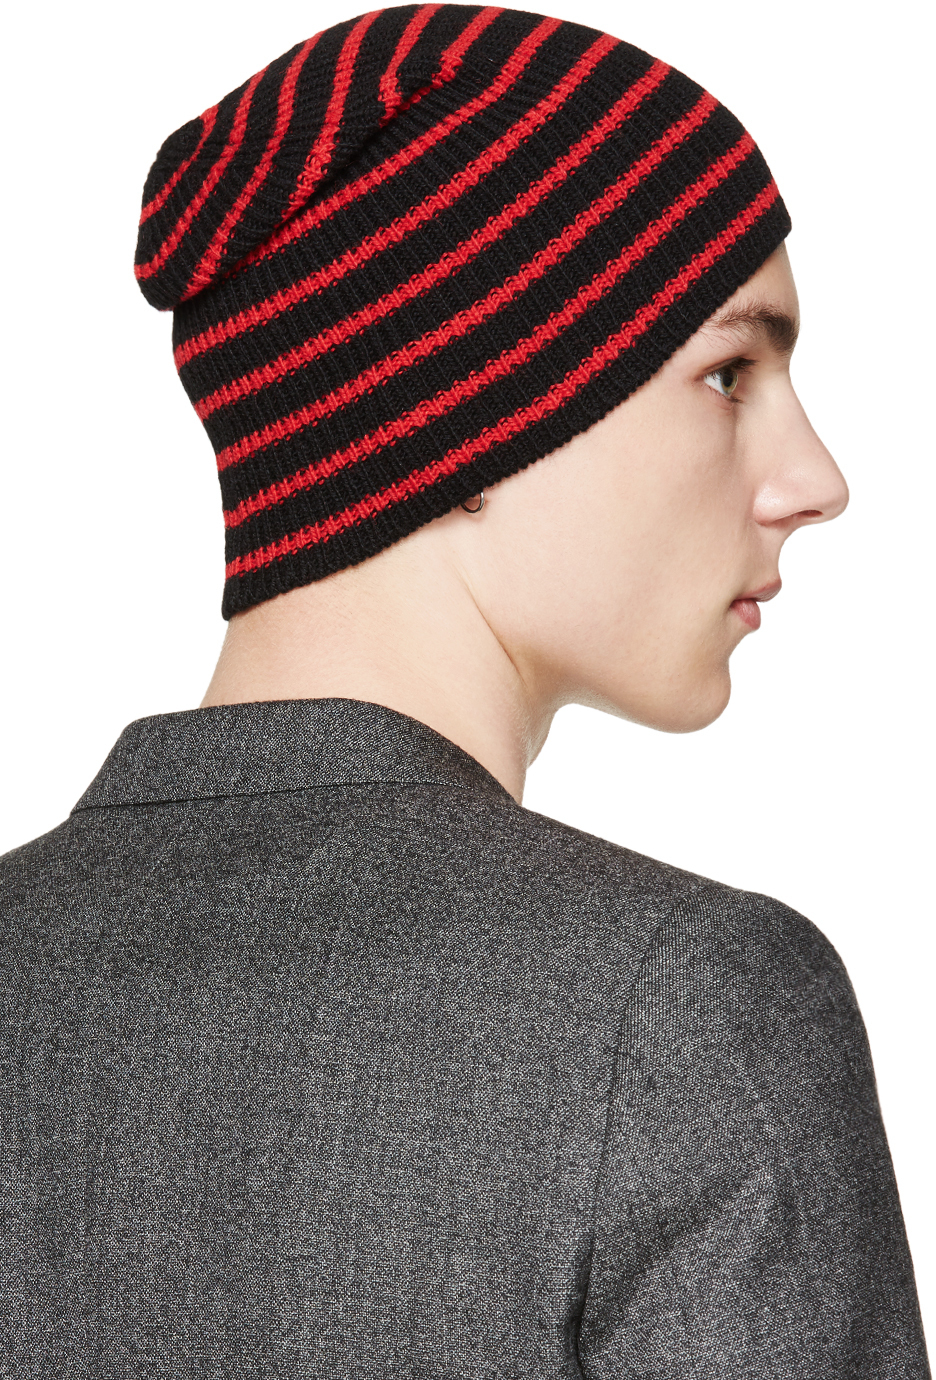 Lyst - Saint Laurent Black And Red Striped Beanie in Red for Men 2db153e22ff